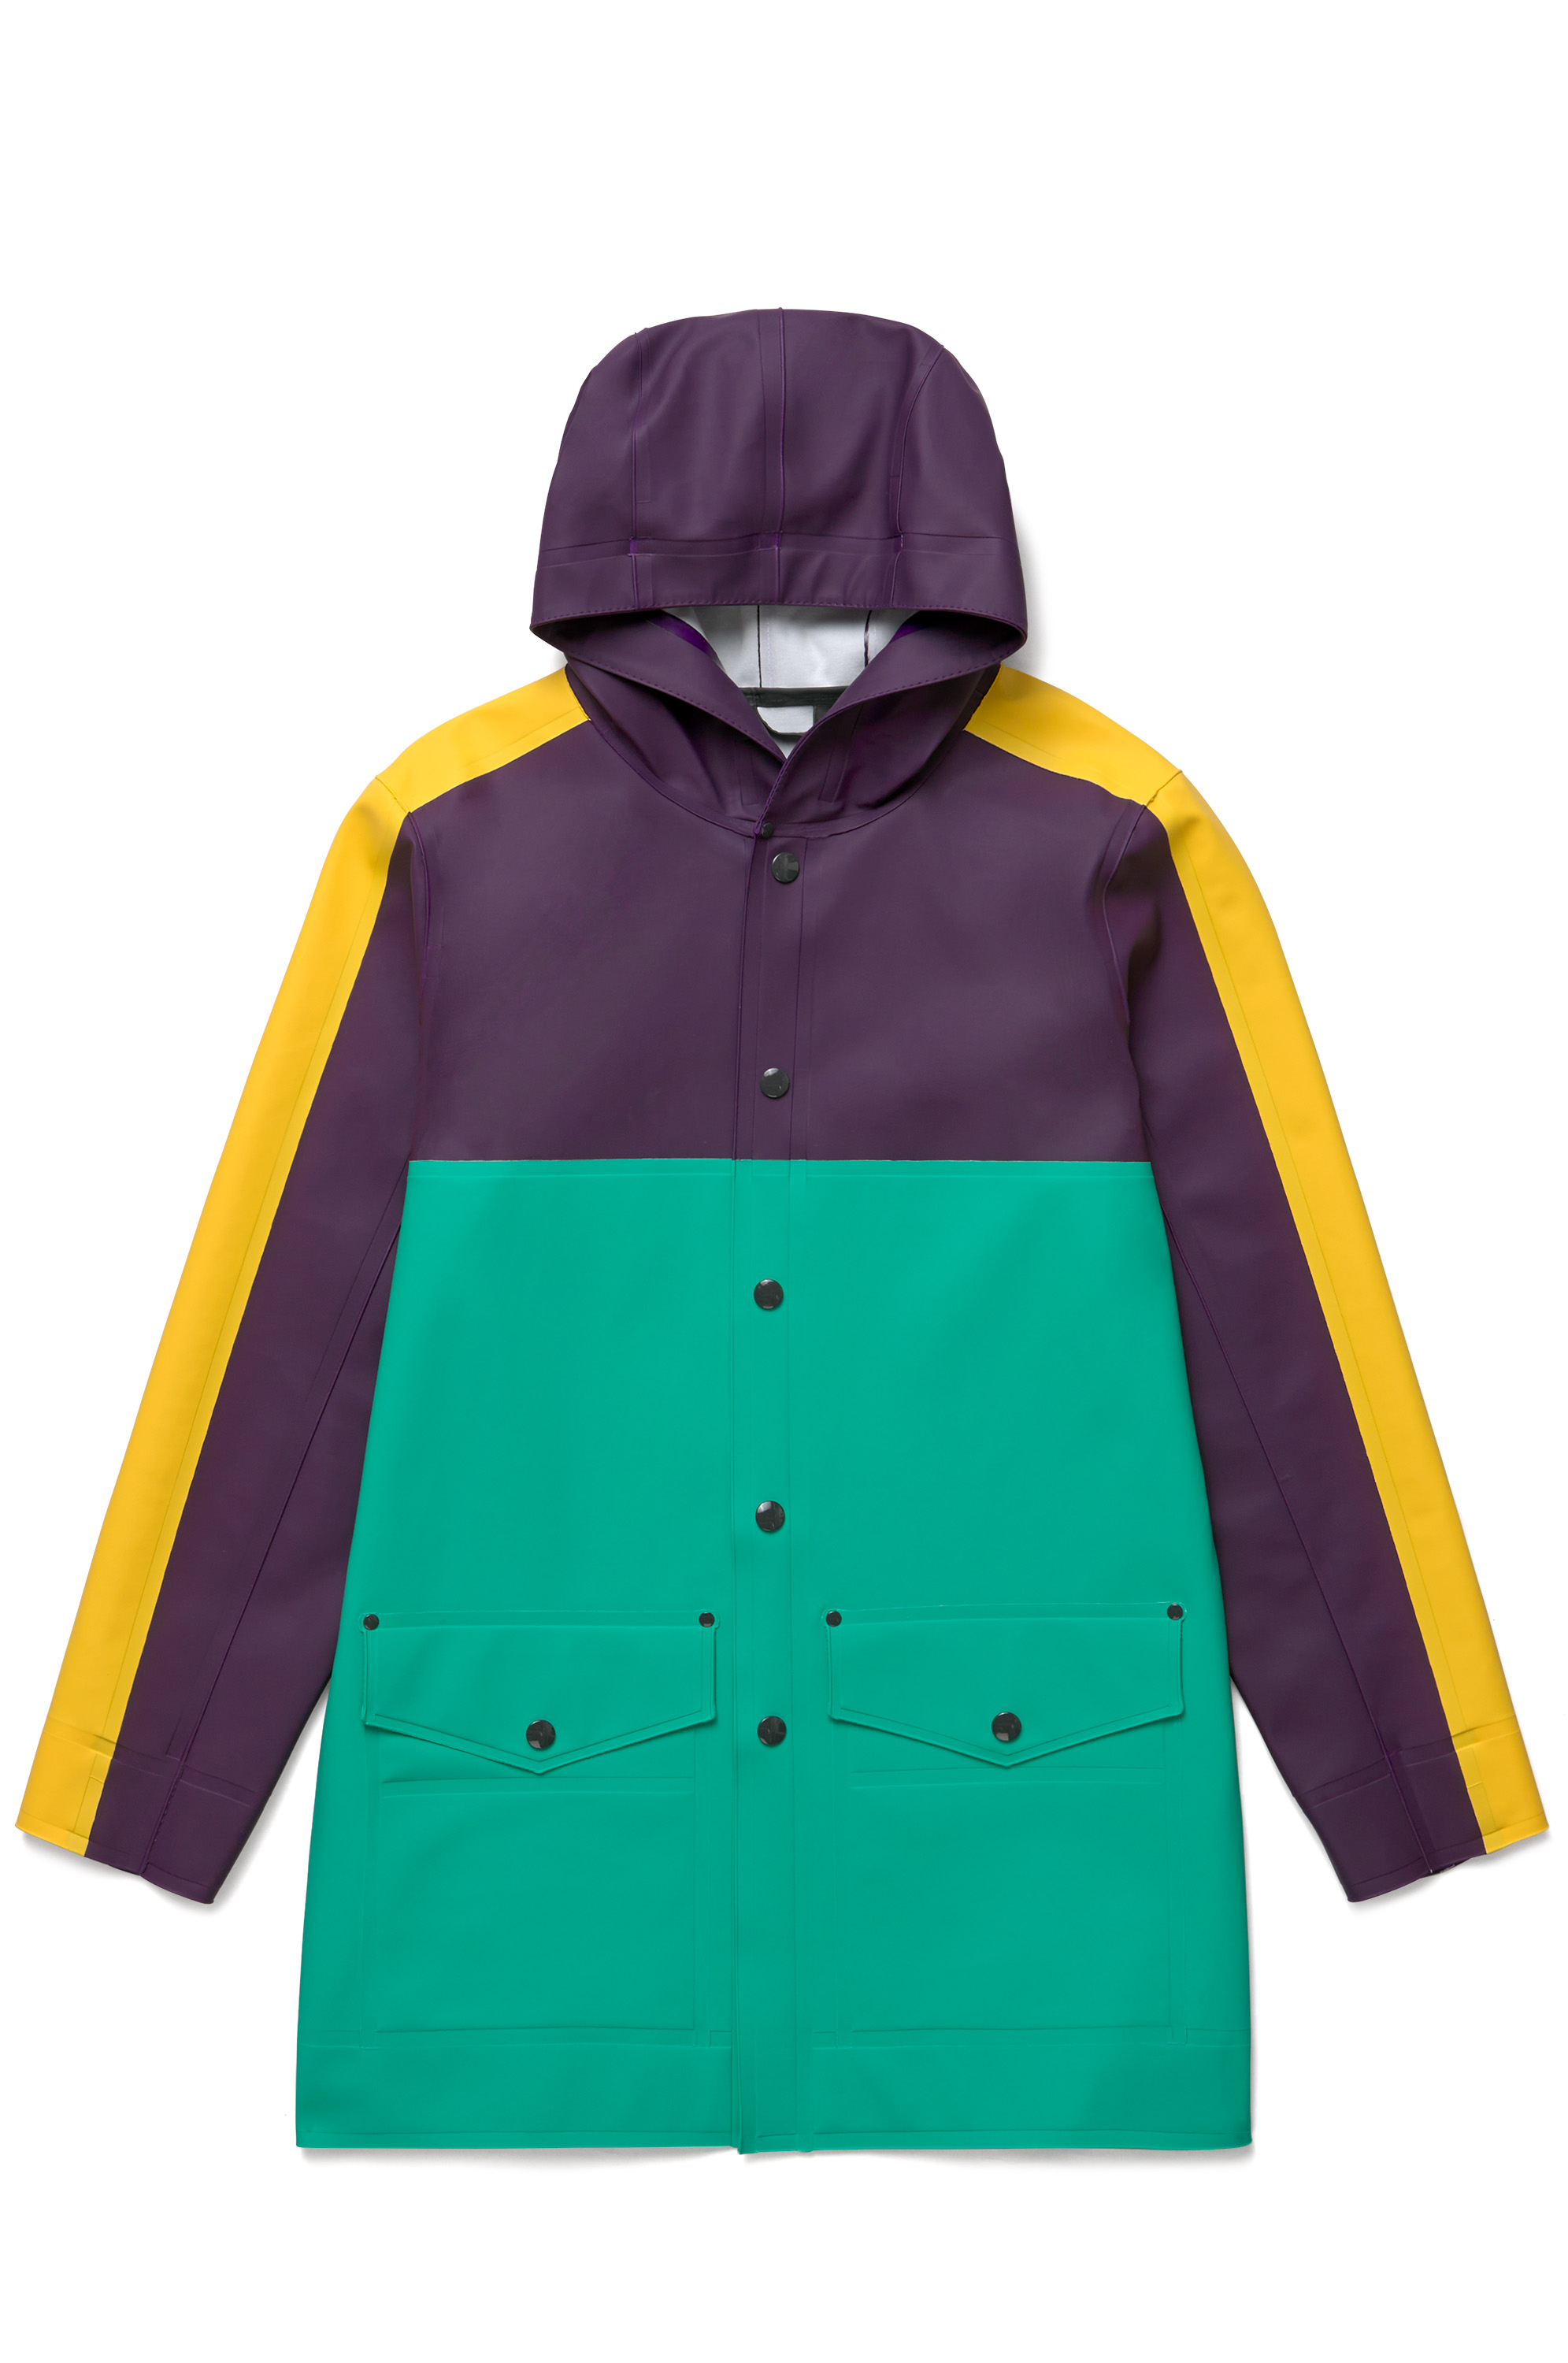 Stutterheim_Marni_SS18_Man_BlockCoat_EmeraldGreen_Product